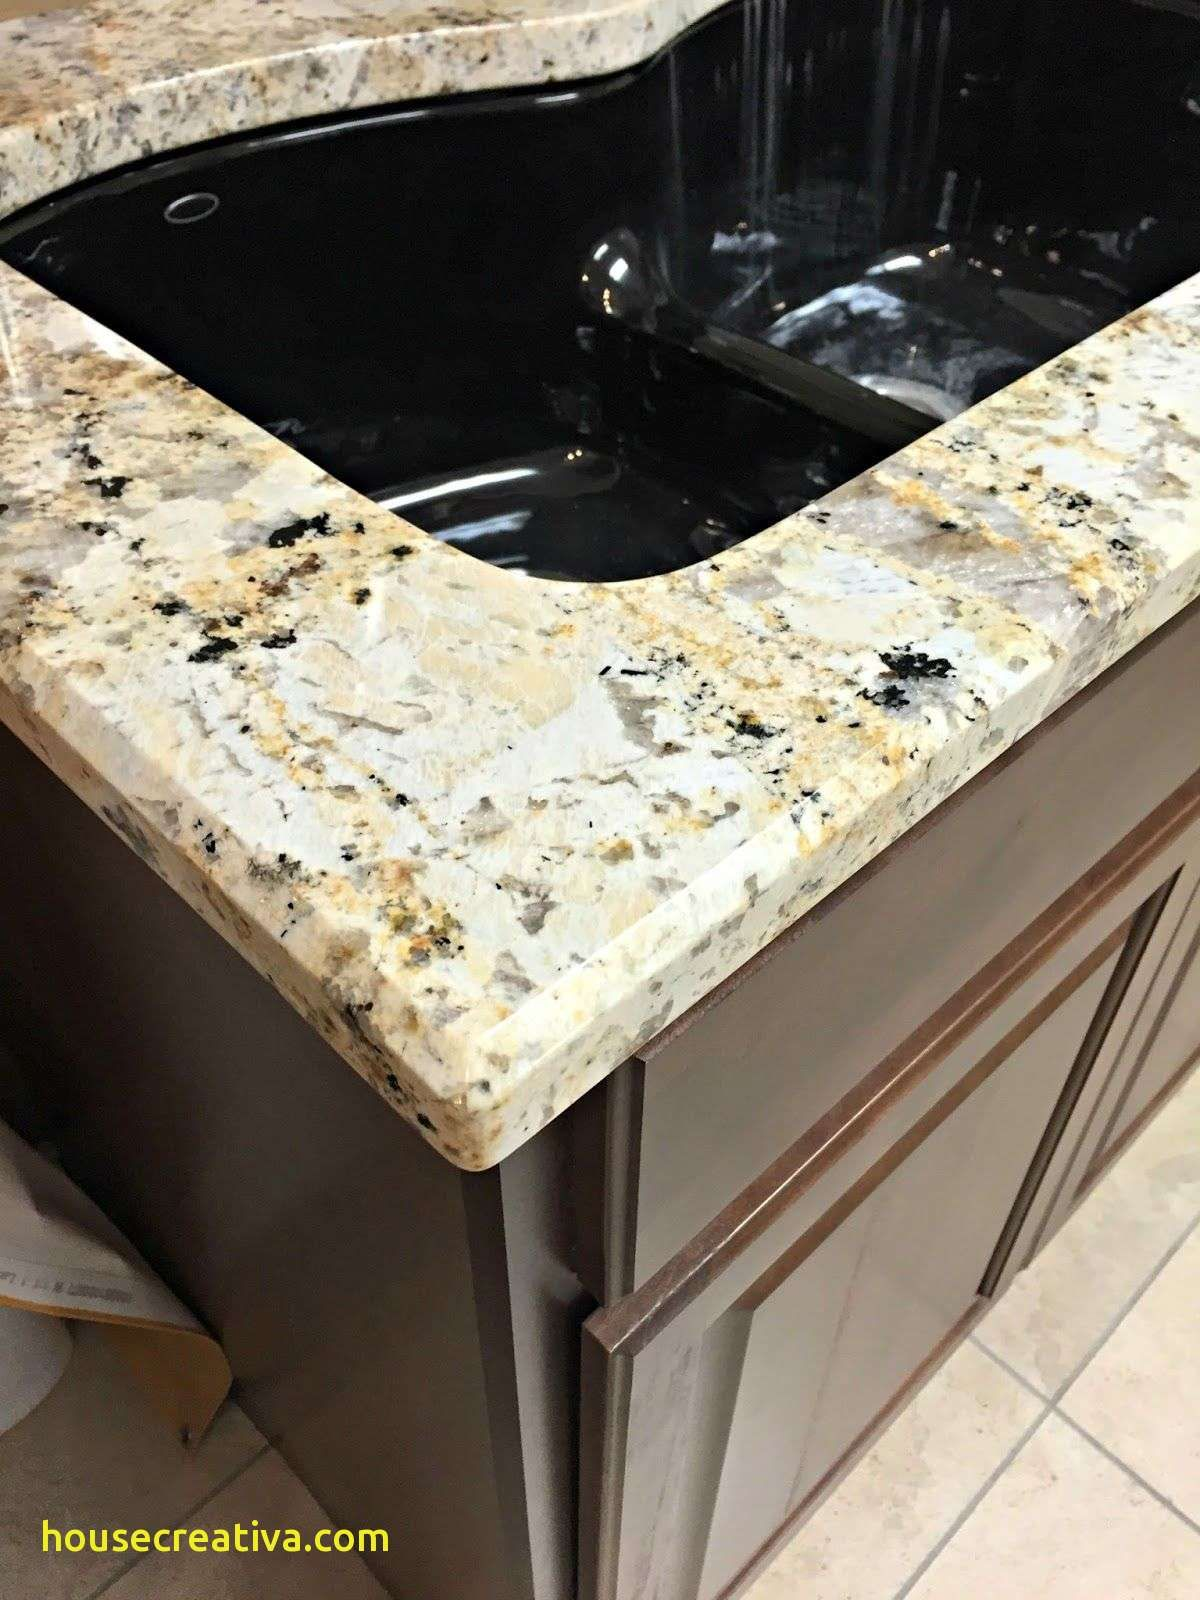 Inspirational Half Bullnose Edge Granite Pictures Homedecoration Homedecora Granite Countertops White Granite Countertops White Granite Countertops Kitchen